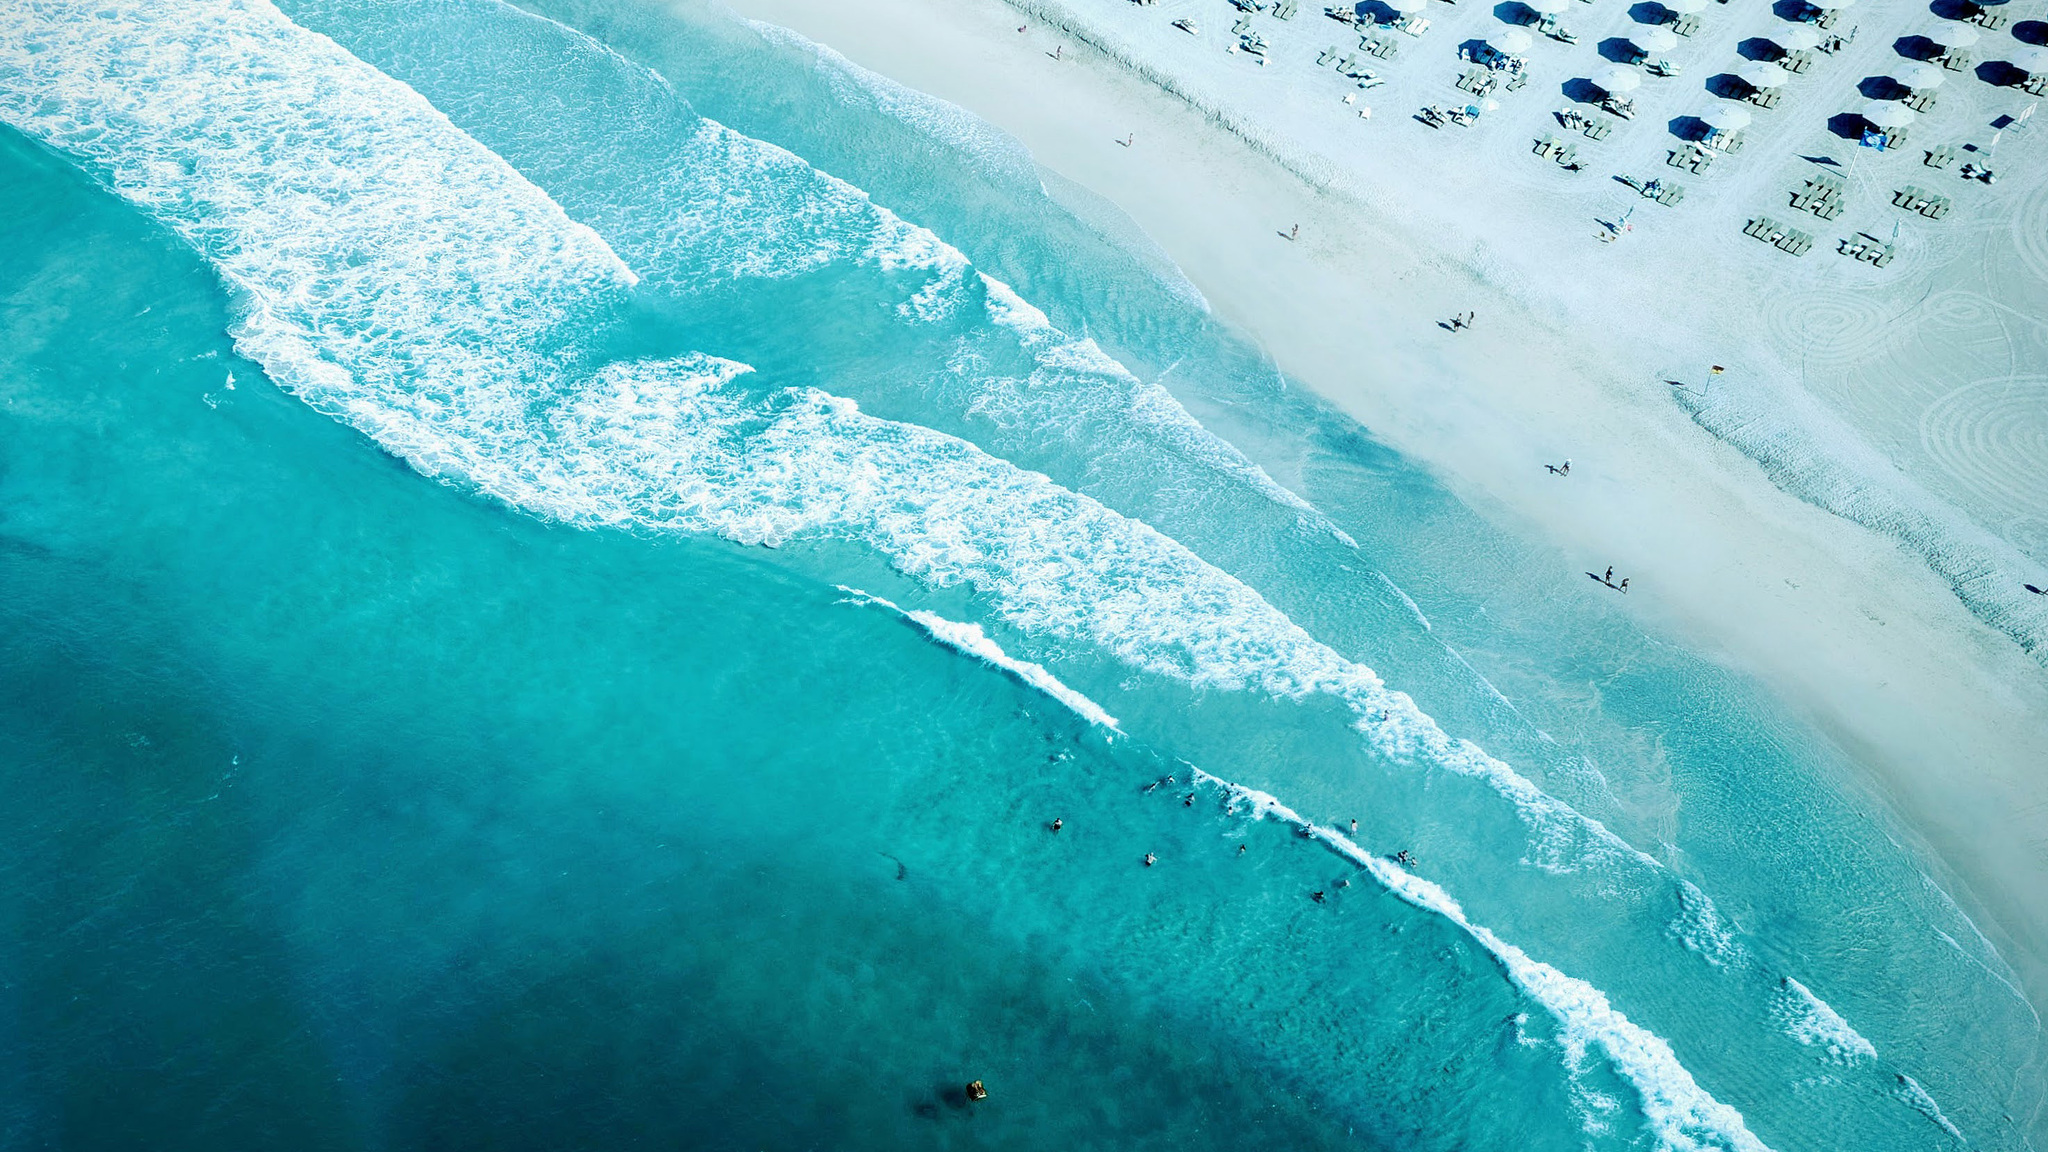 Beach Seashore Aerial Photography 2e